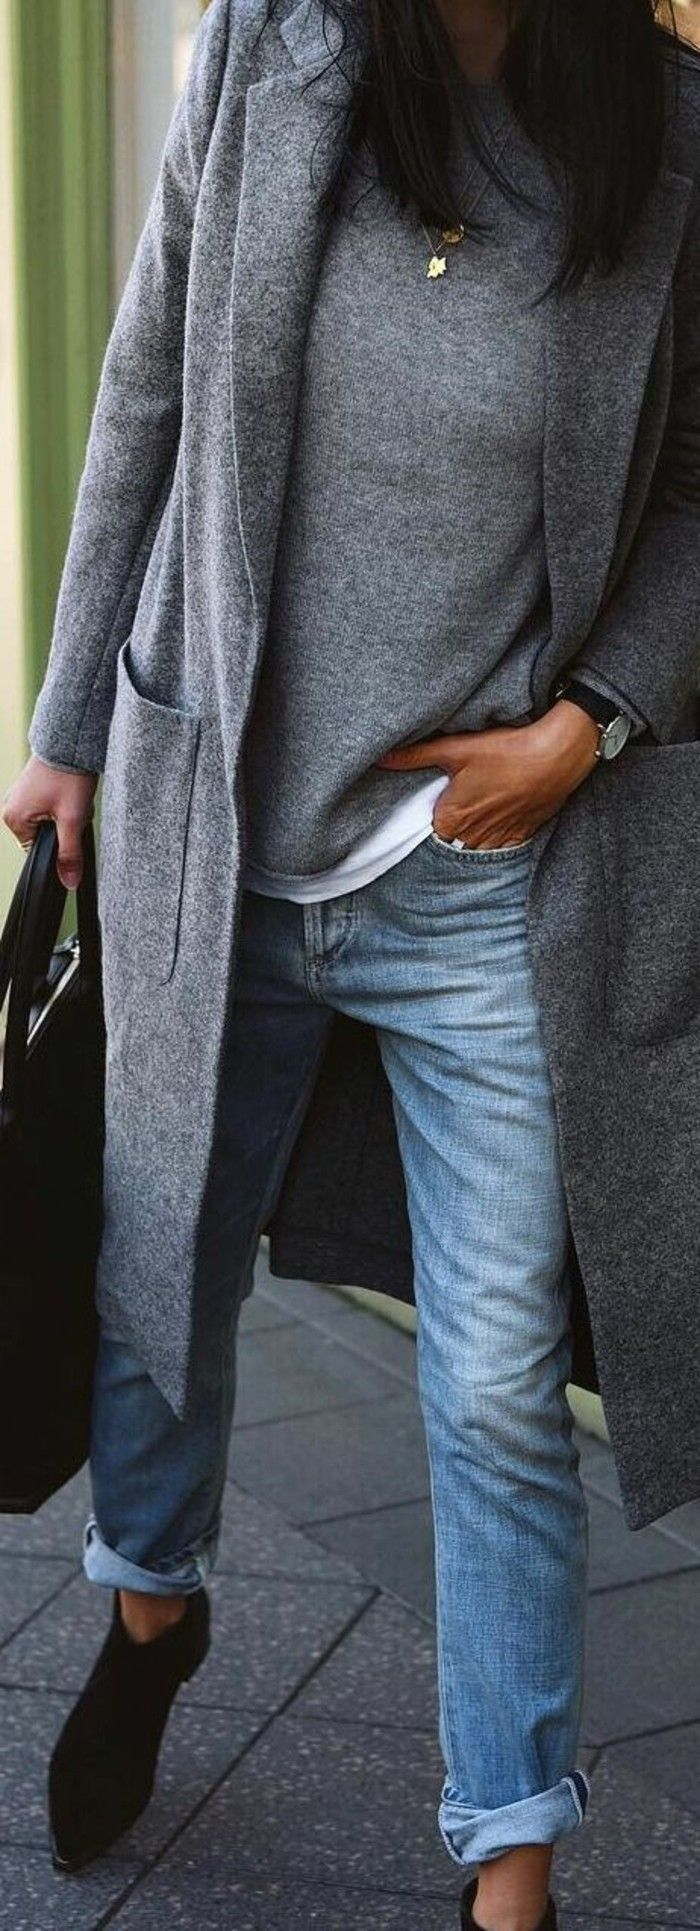 What can a gray coat be combined with?